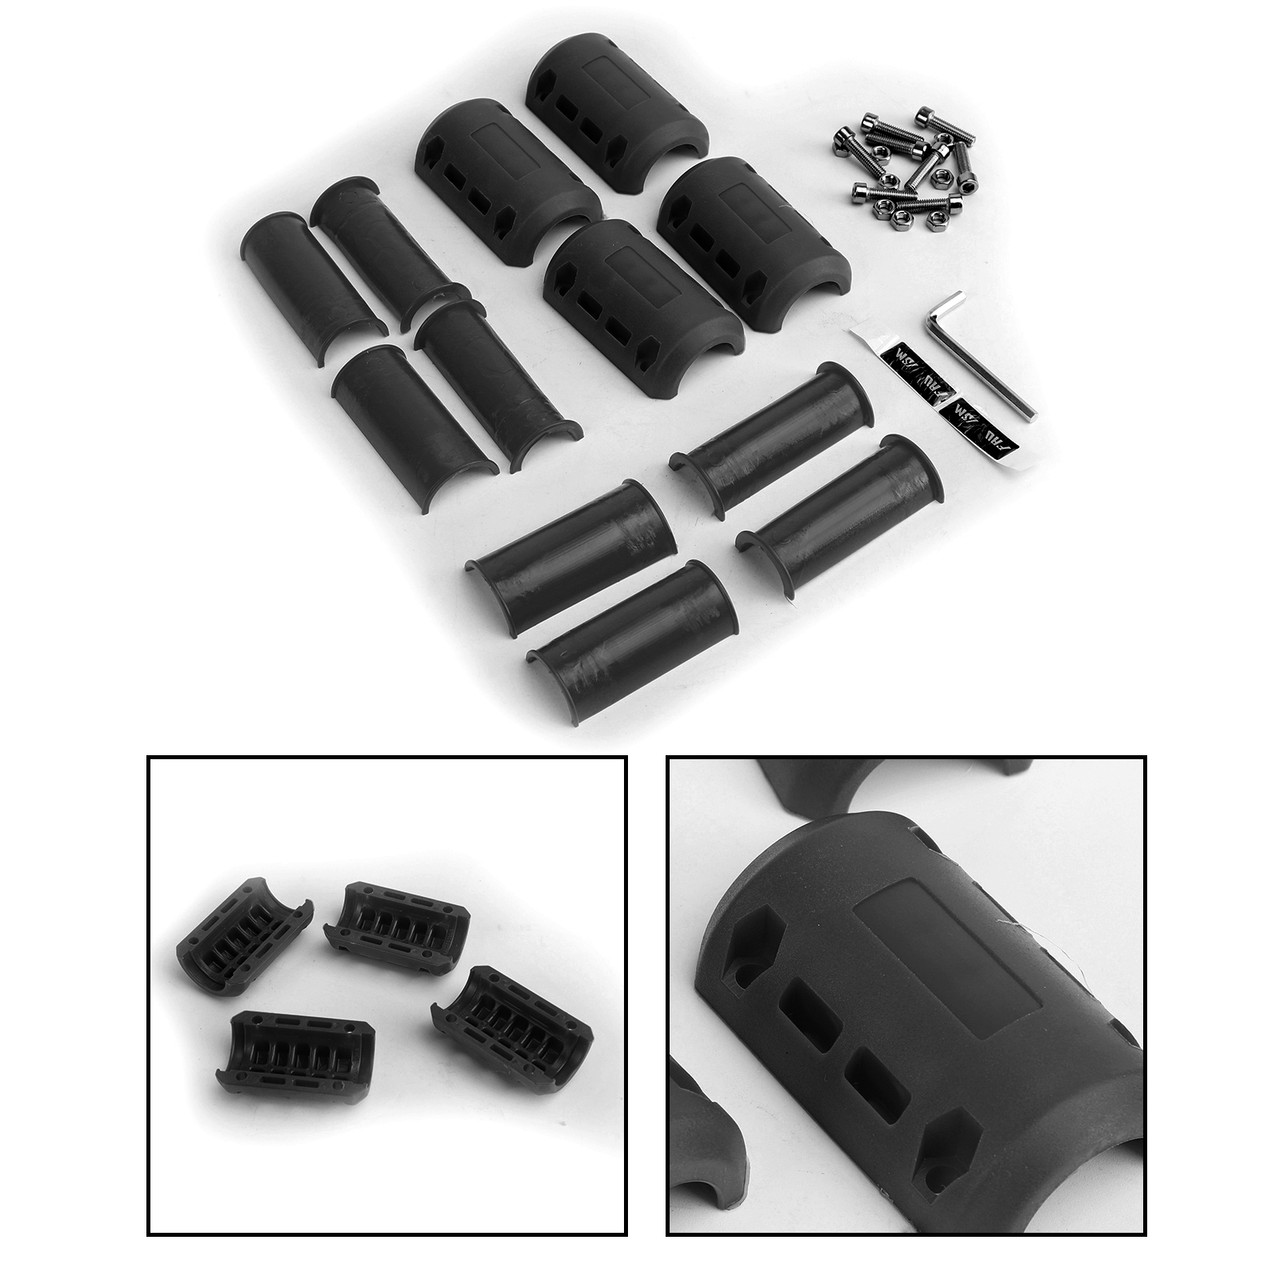 22-28mm Engine Protection Guard Bumper Block For Honda Africa Twin CRF1000L VFR1200X X-ADV 750 NC750S/X NC700X/S Black